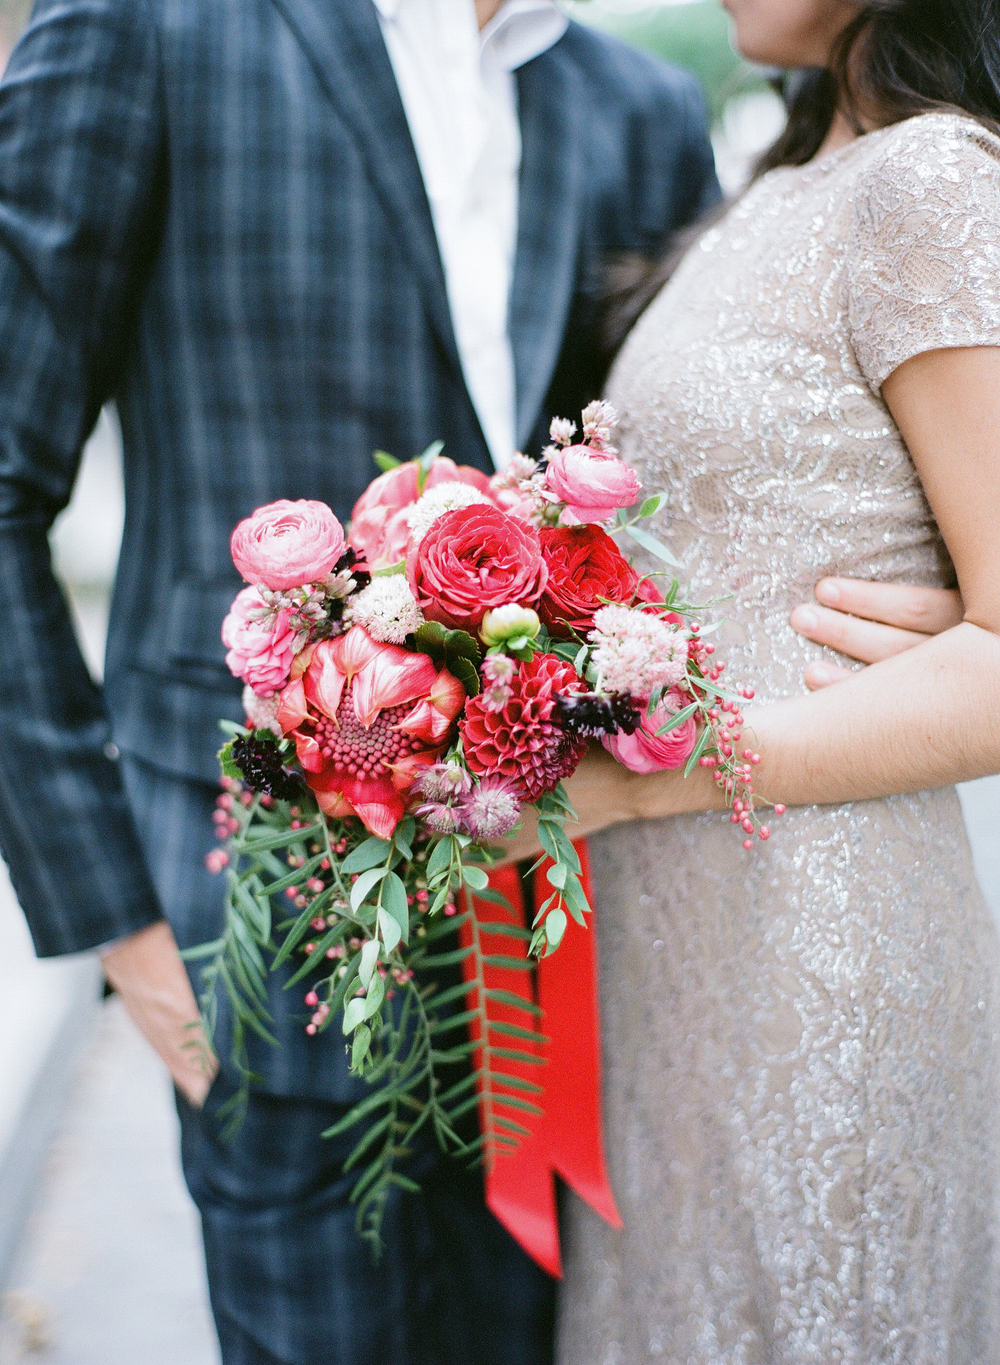 New York City Elopement - Lindsey Brunk